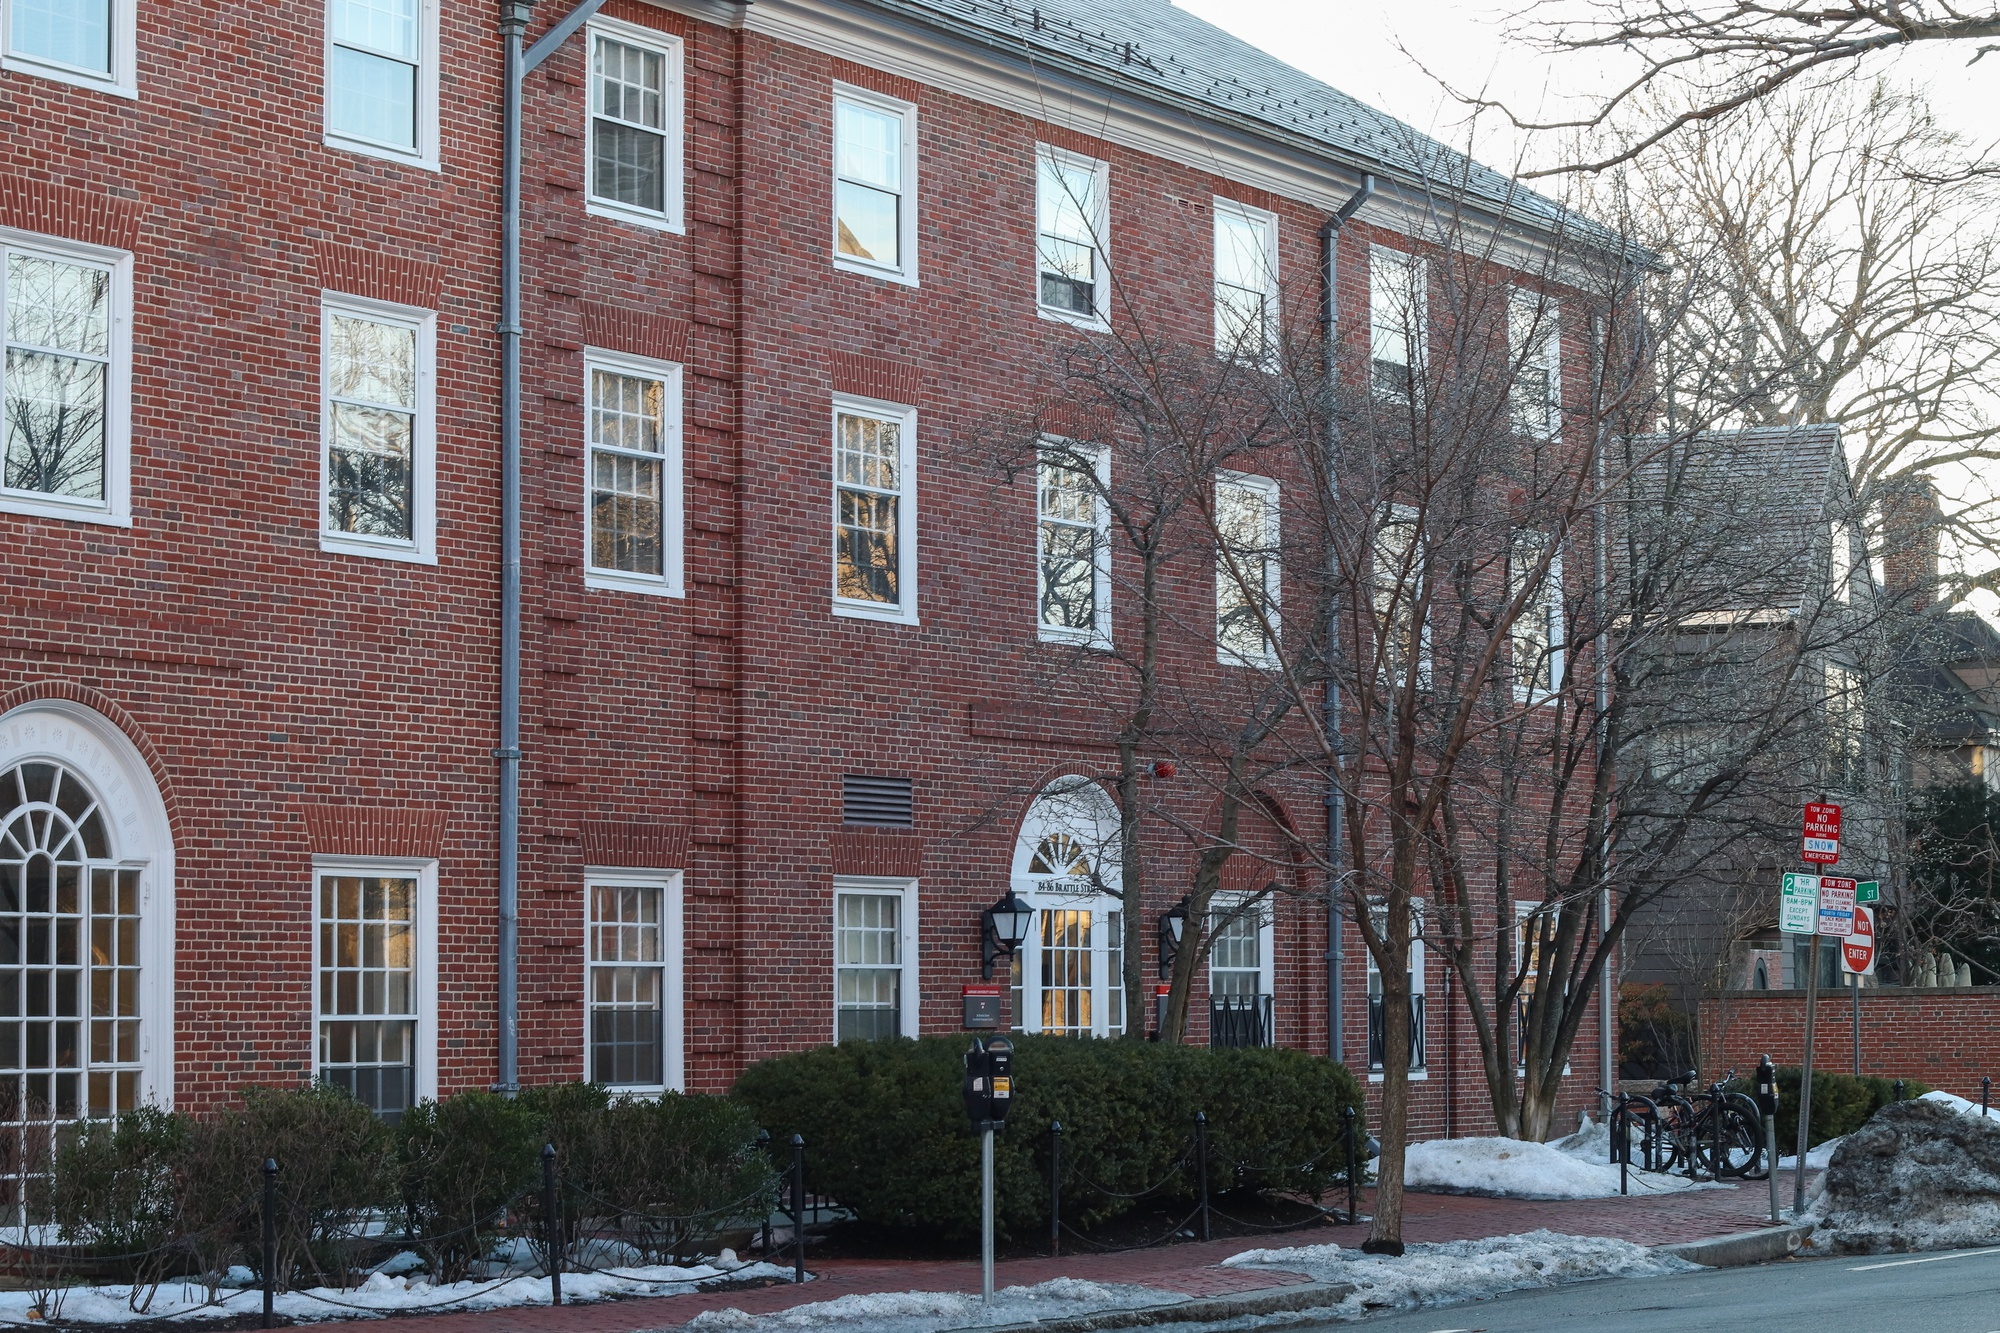 www.thecrimson.com: Harvard College Accepts Record-Low 3.43% of Applicants to Class of 2025